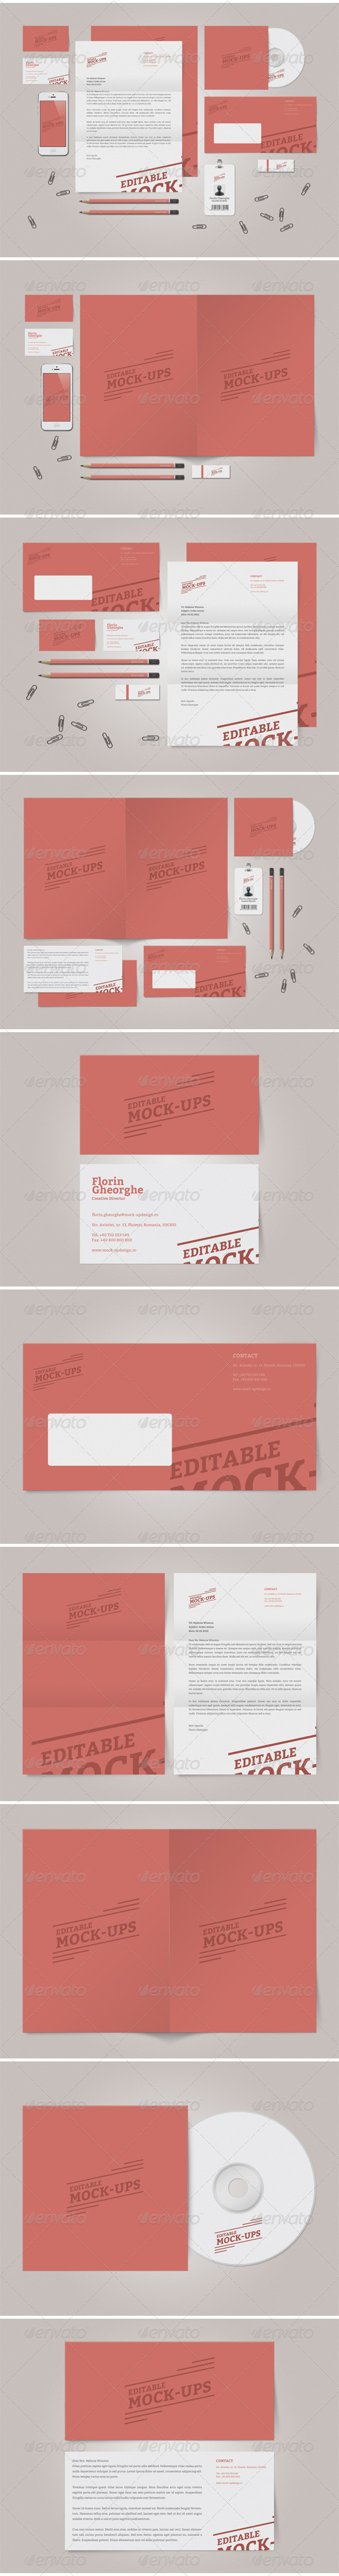 Simple Stationery Mock-Up - Stationery Print